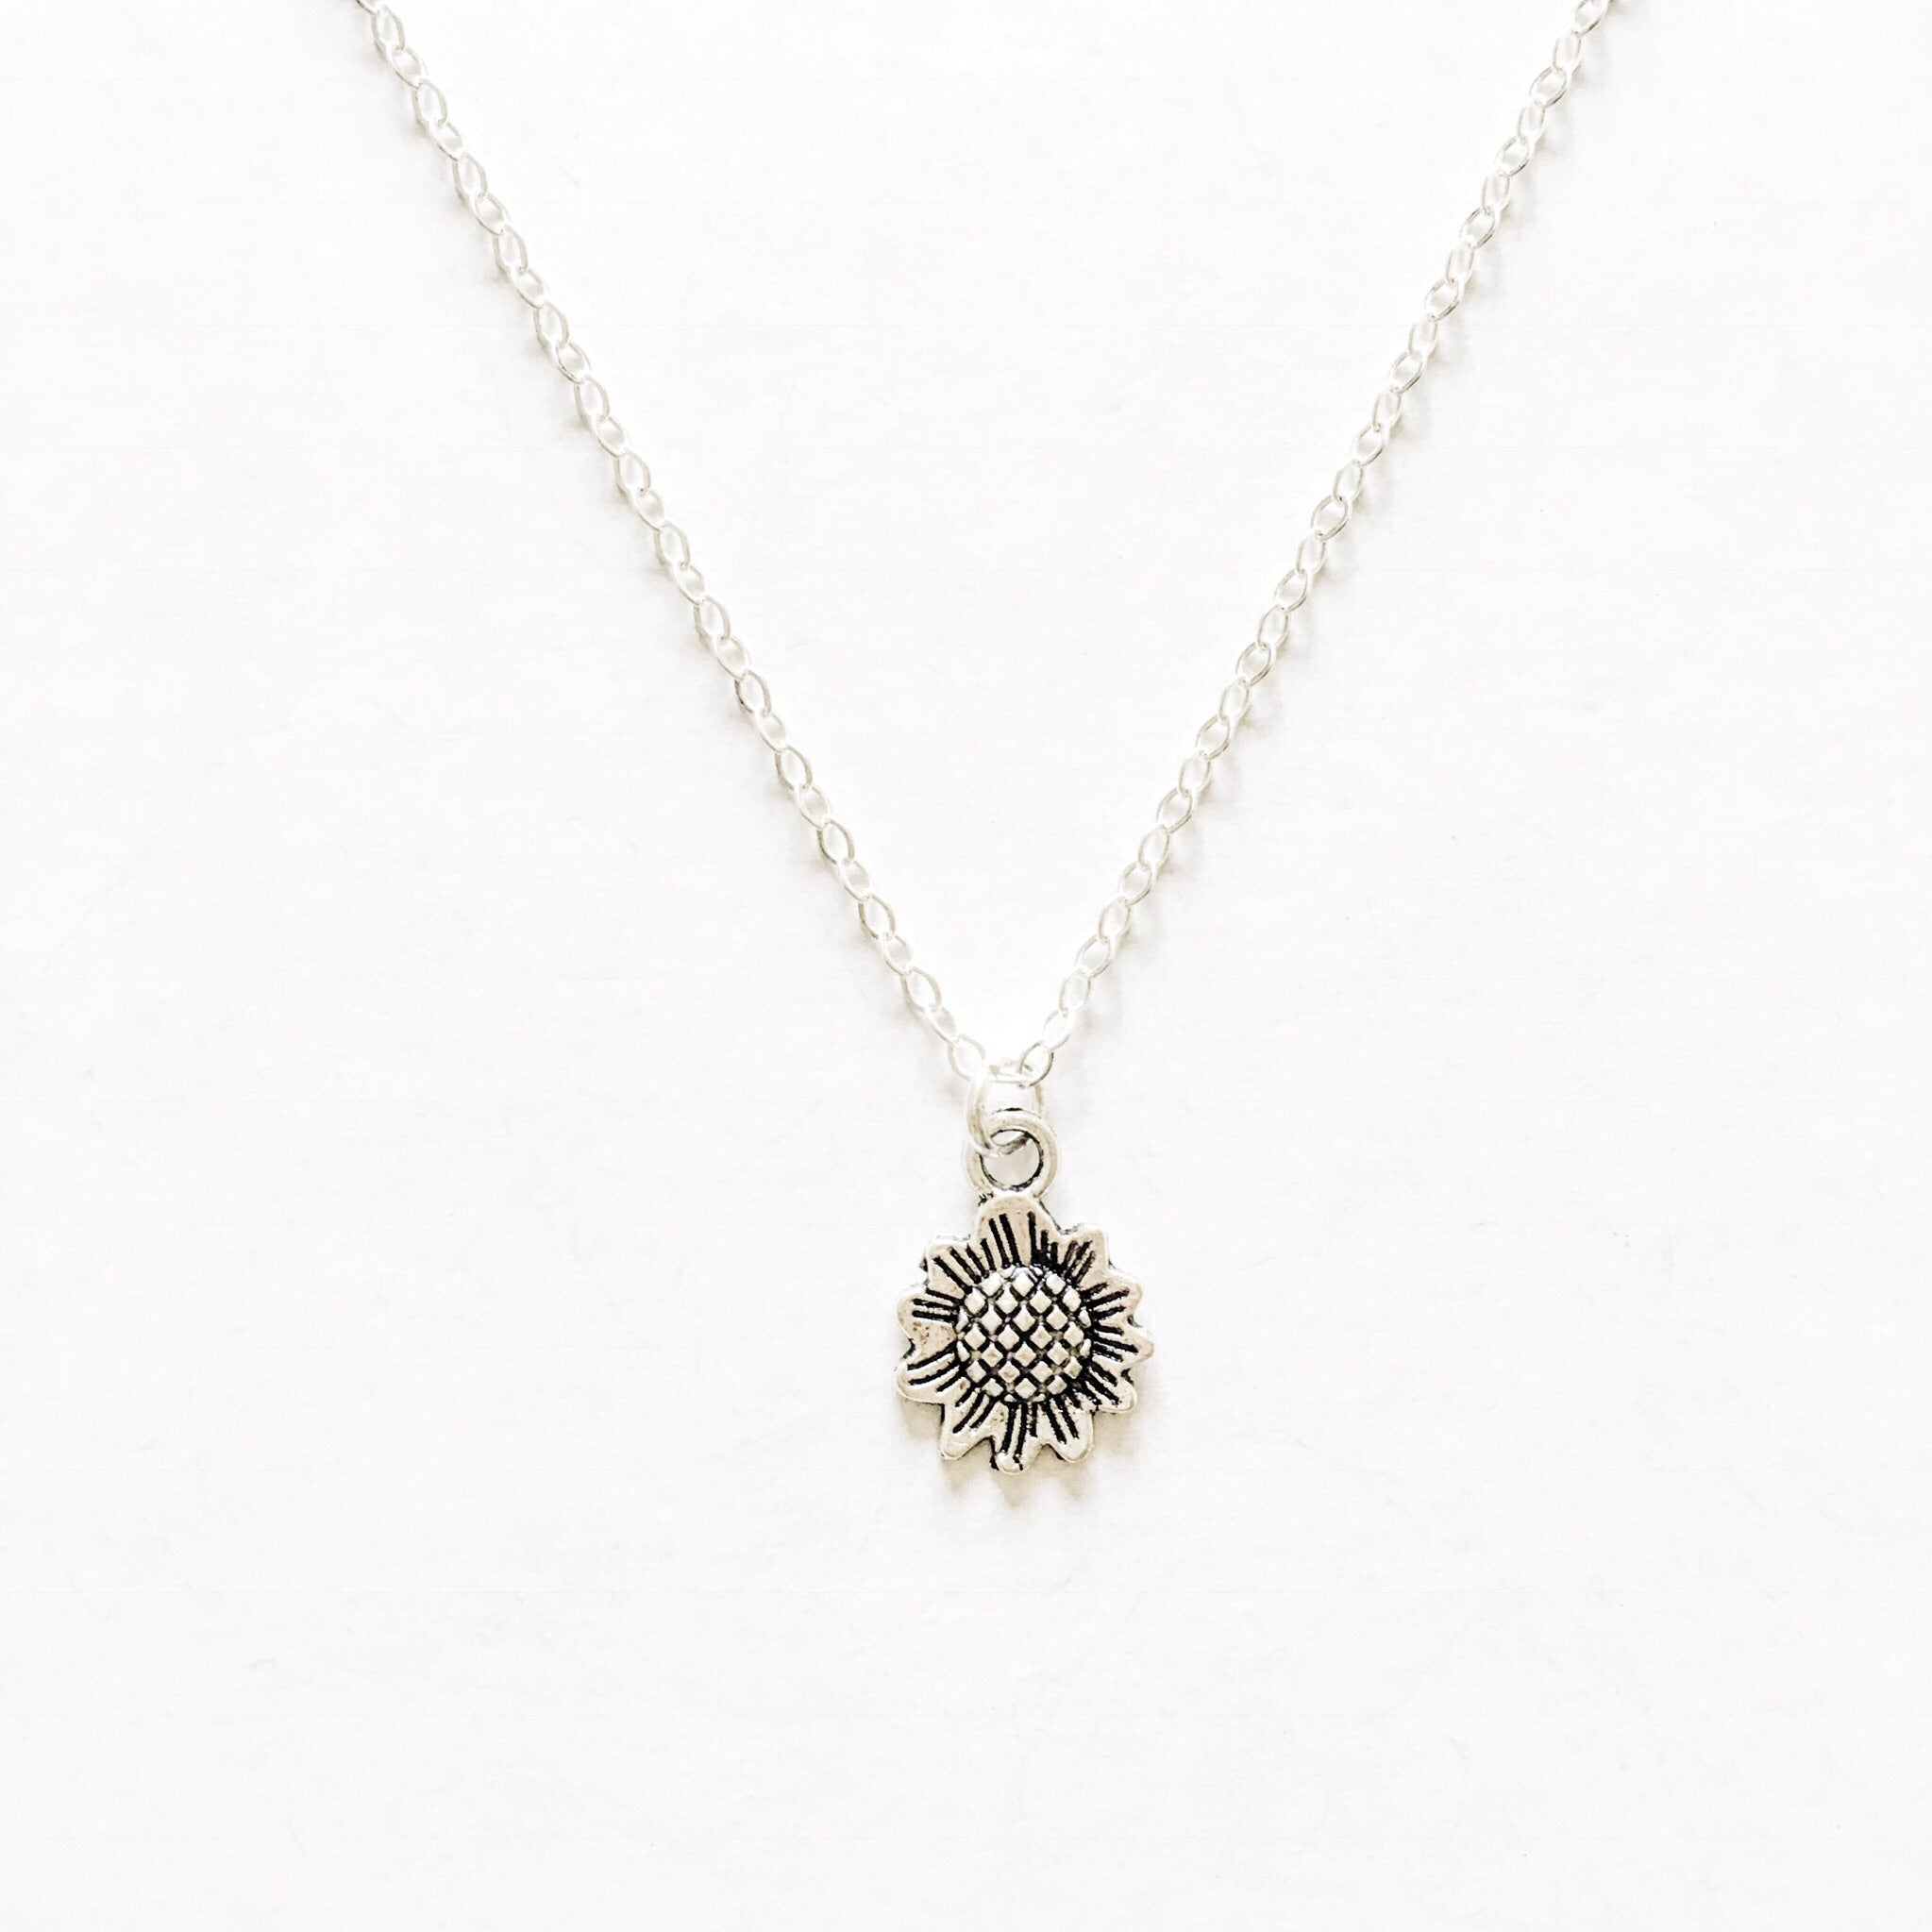 Sunflower Chain Choker